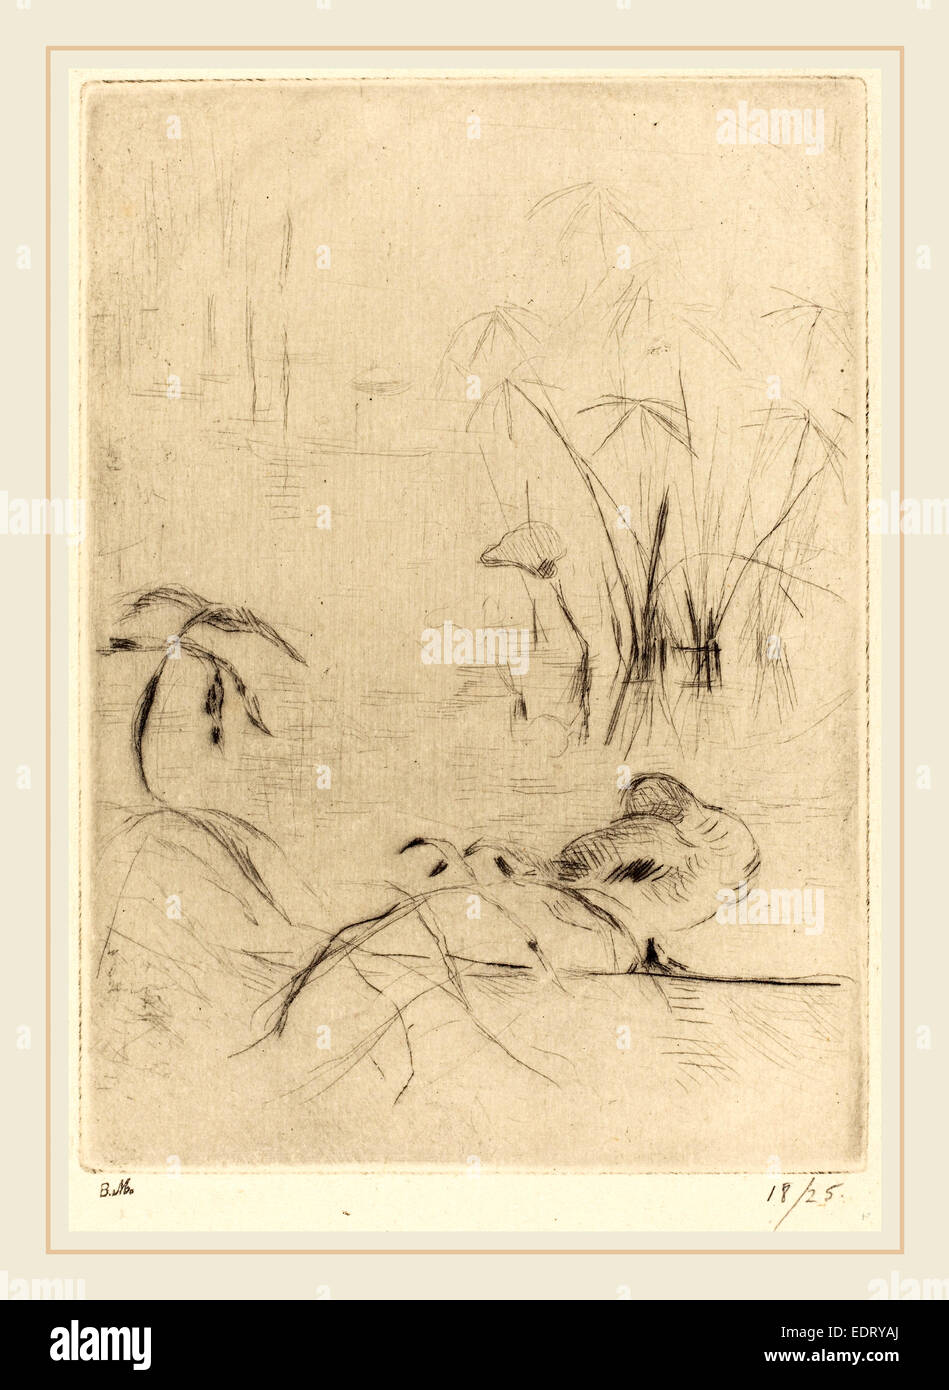 Berthe Morisot (French, 1841-1895), Ducks at Rest on the Bank, 1888-1890, drypoint [reprinted by Ambroise Vollard] - Stock Image